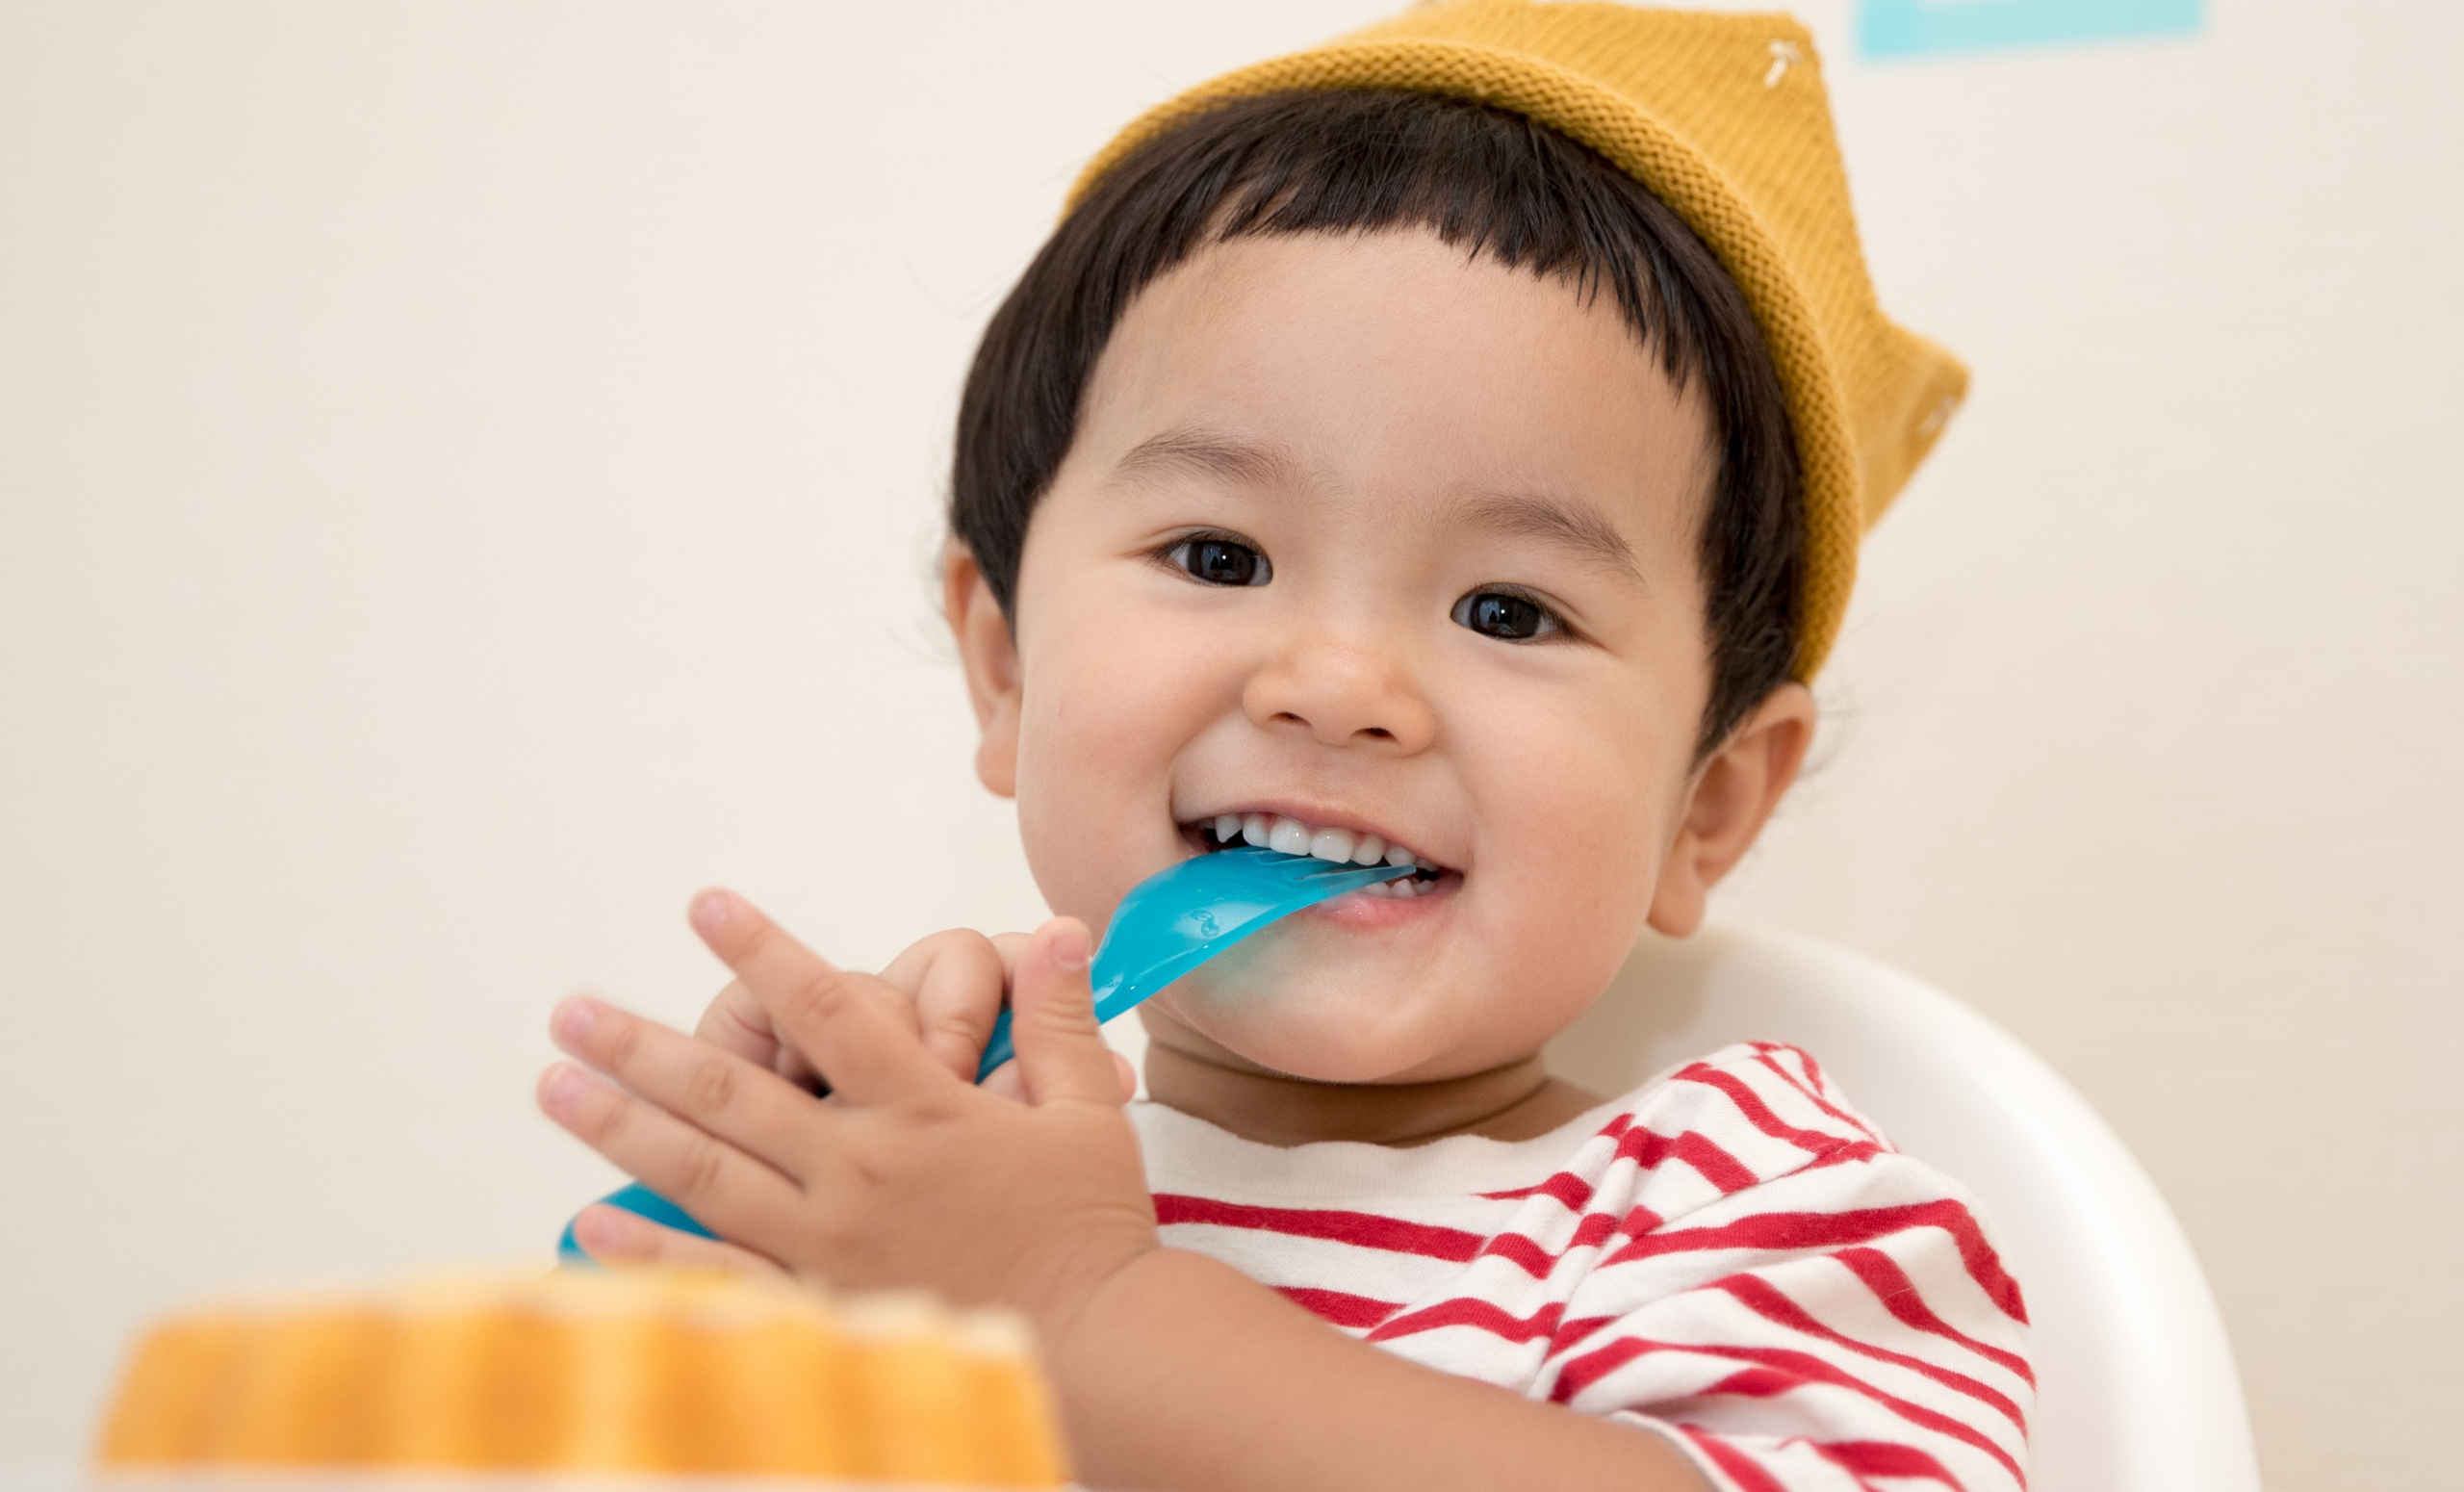 For Young Kids Orthodontics Isn't Just About A Pretty Smile